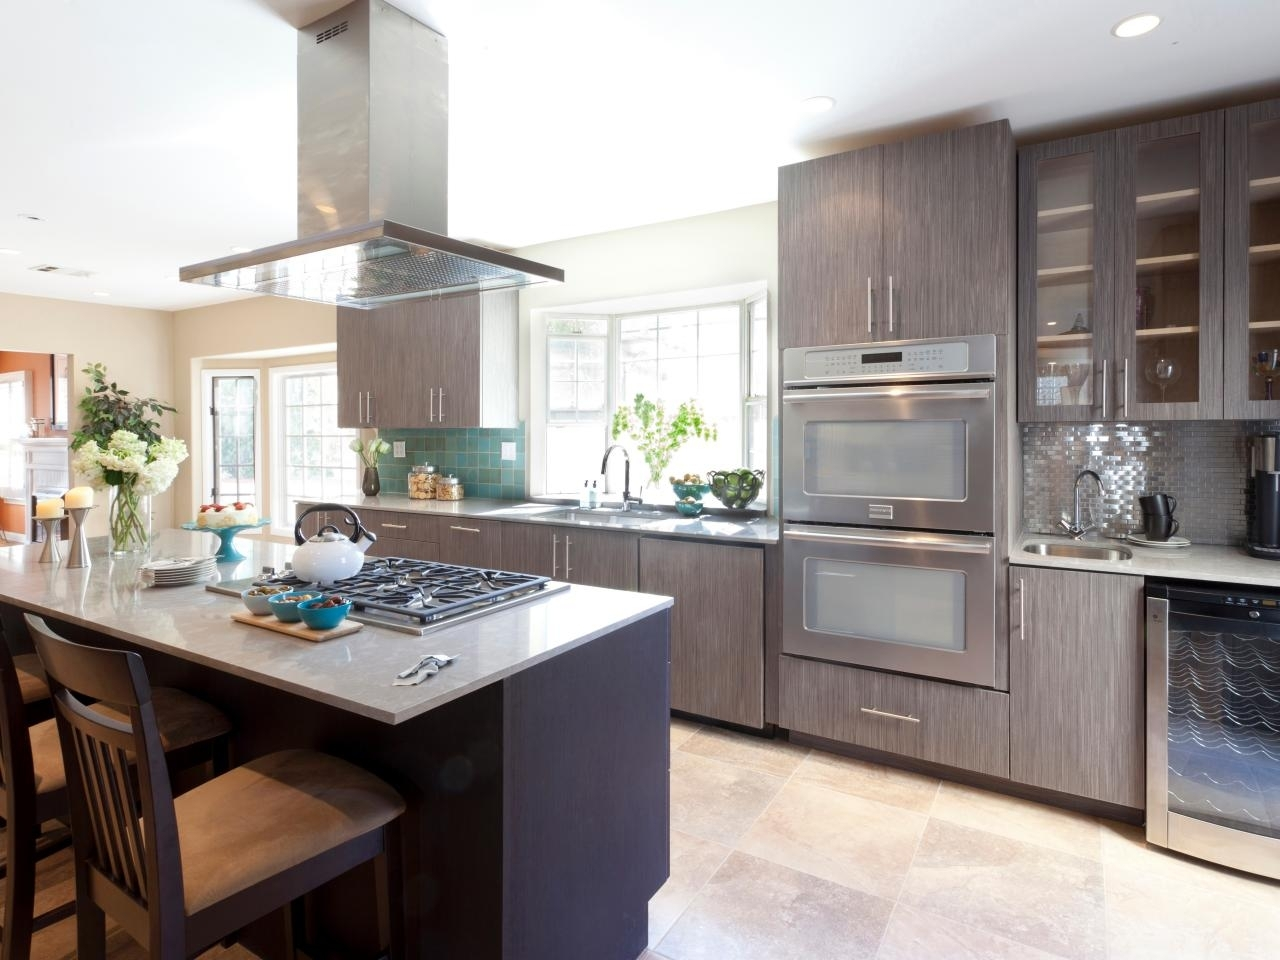 10 Lovely Painting Ideas For Kitchen Cabinets %name 2020